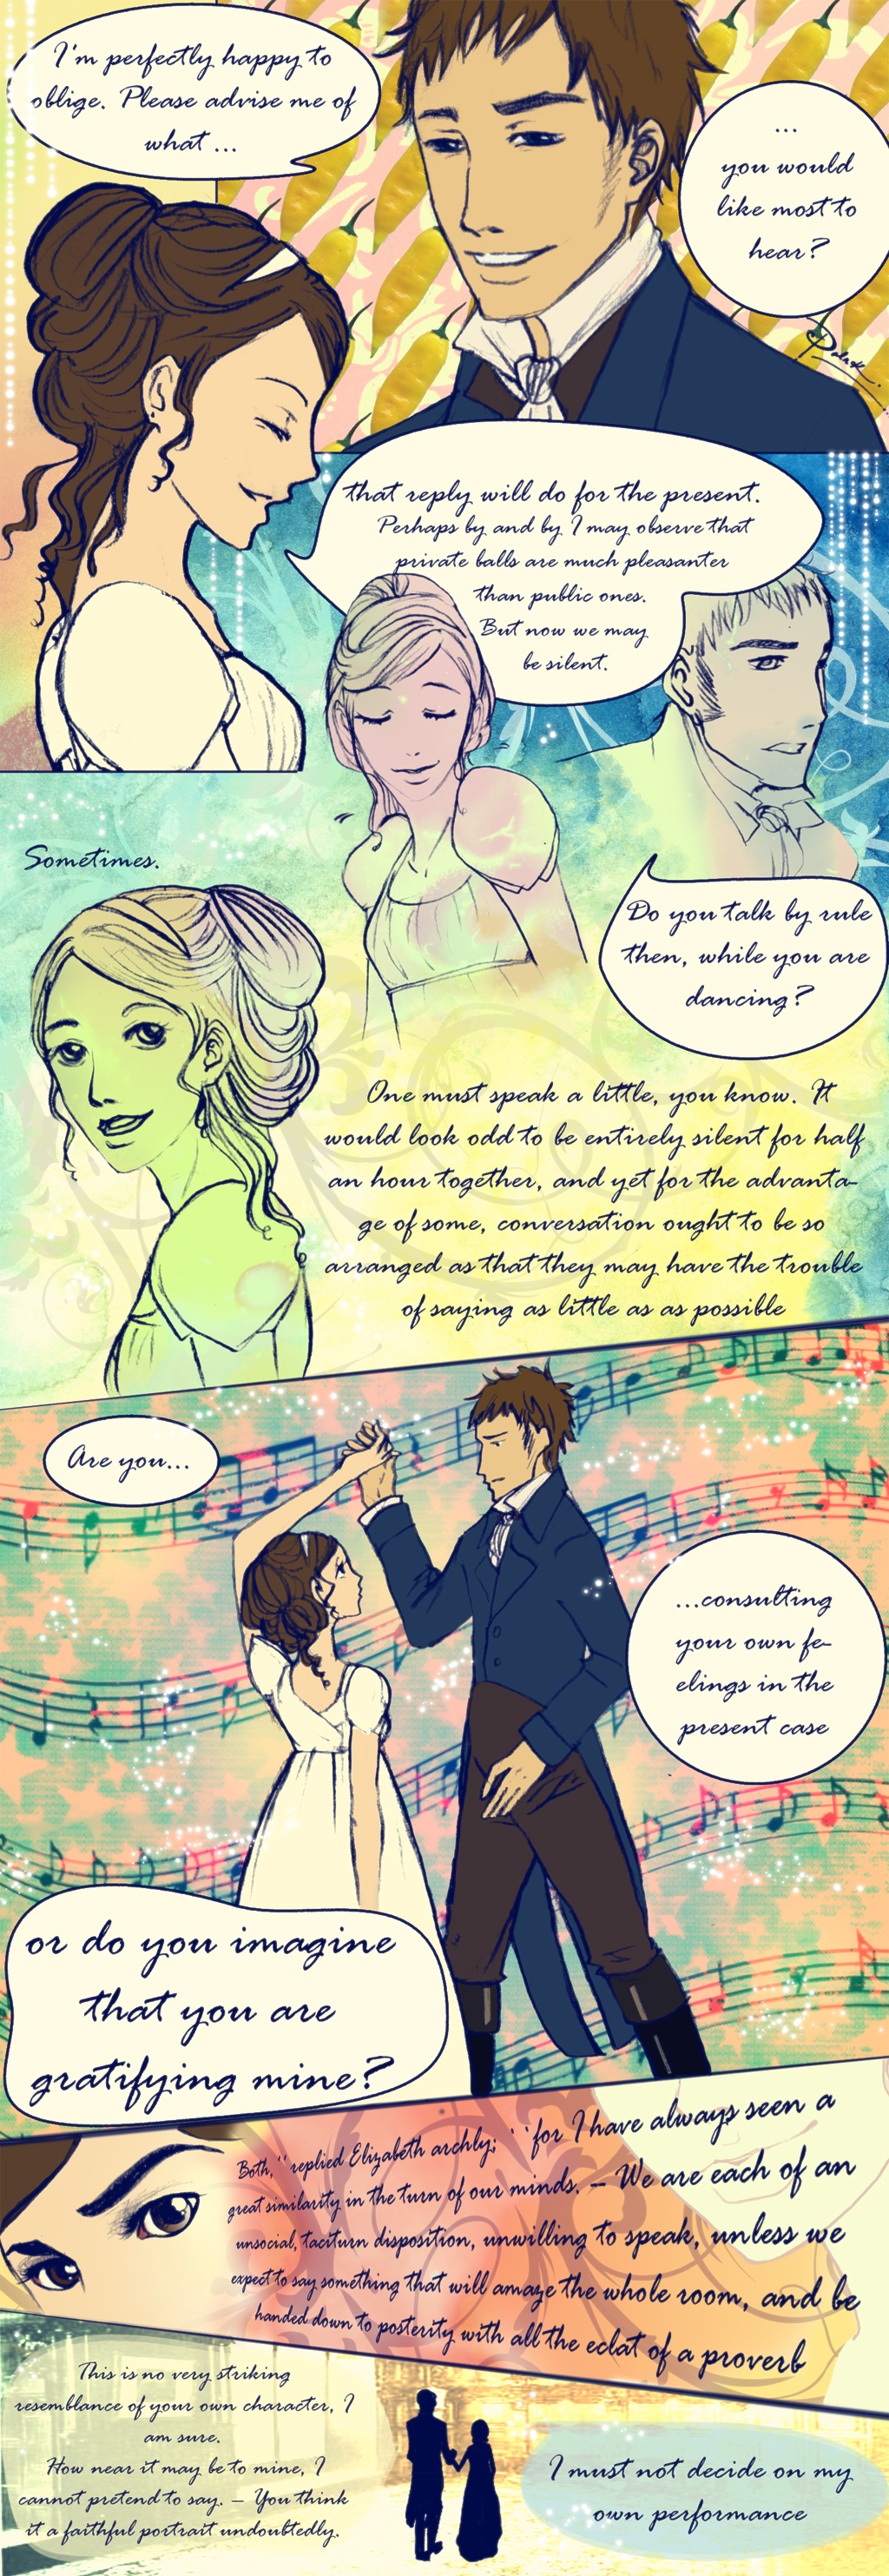 Netherfield Ball page 3